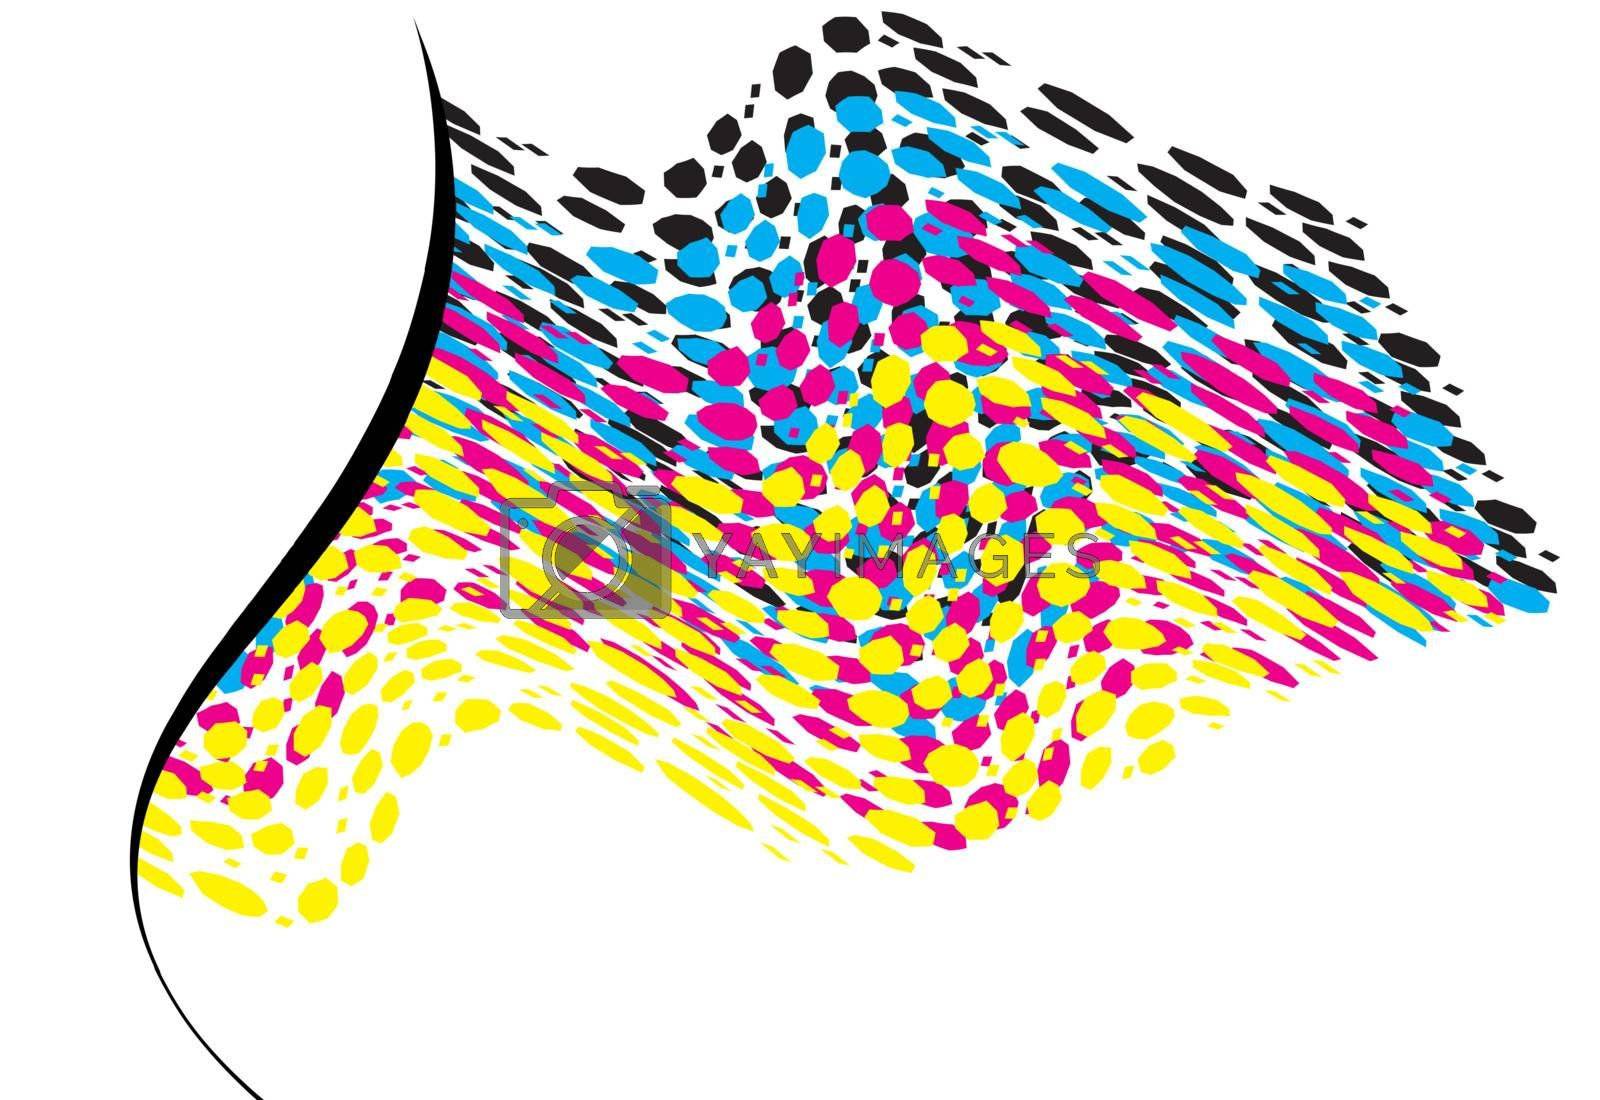 Royalty free image of wavy CMYK spots with copy space horizontal by karinclaus